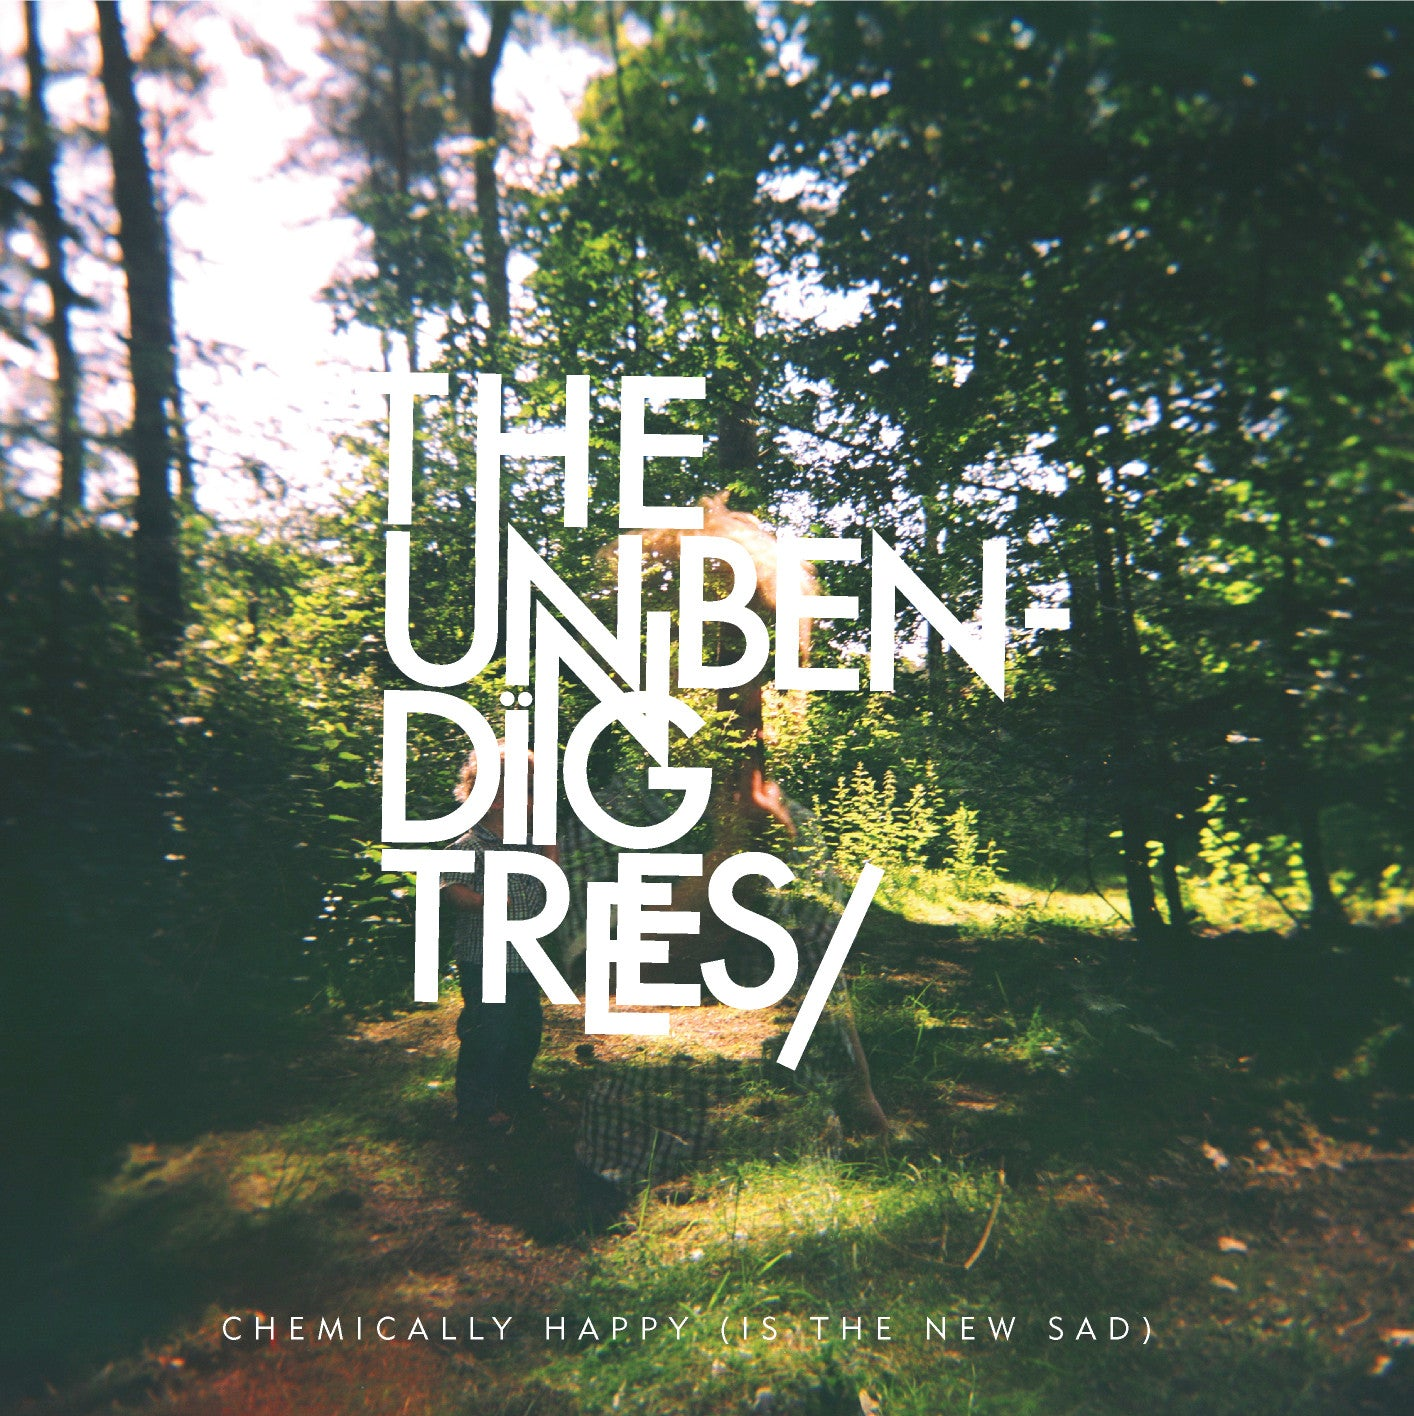 The Unbending Trees - Chemically Happy (Is The New Sad) (feat. Tracey Thorn) (CD)